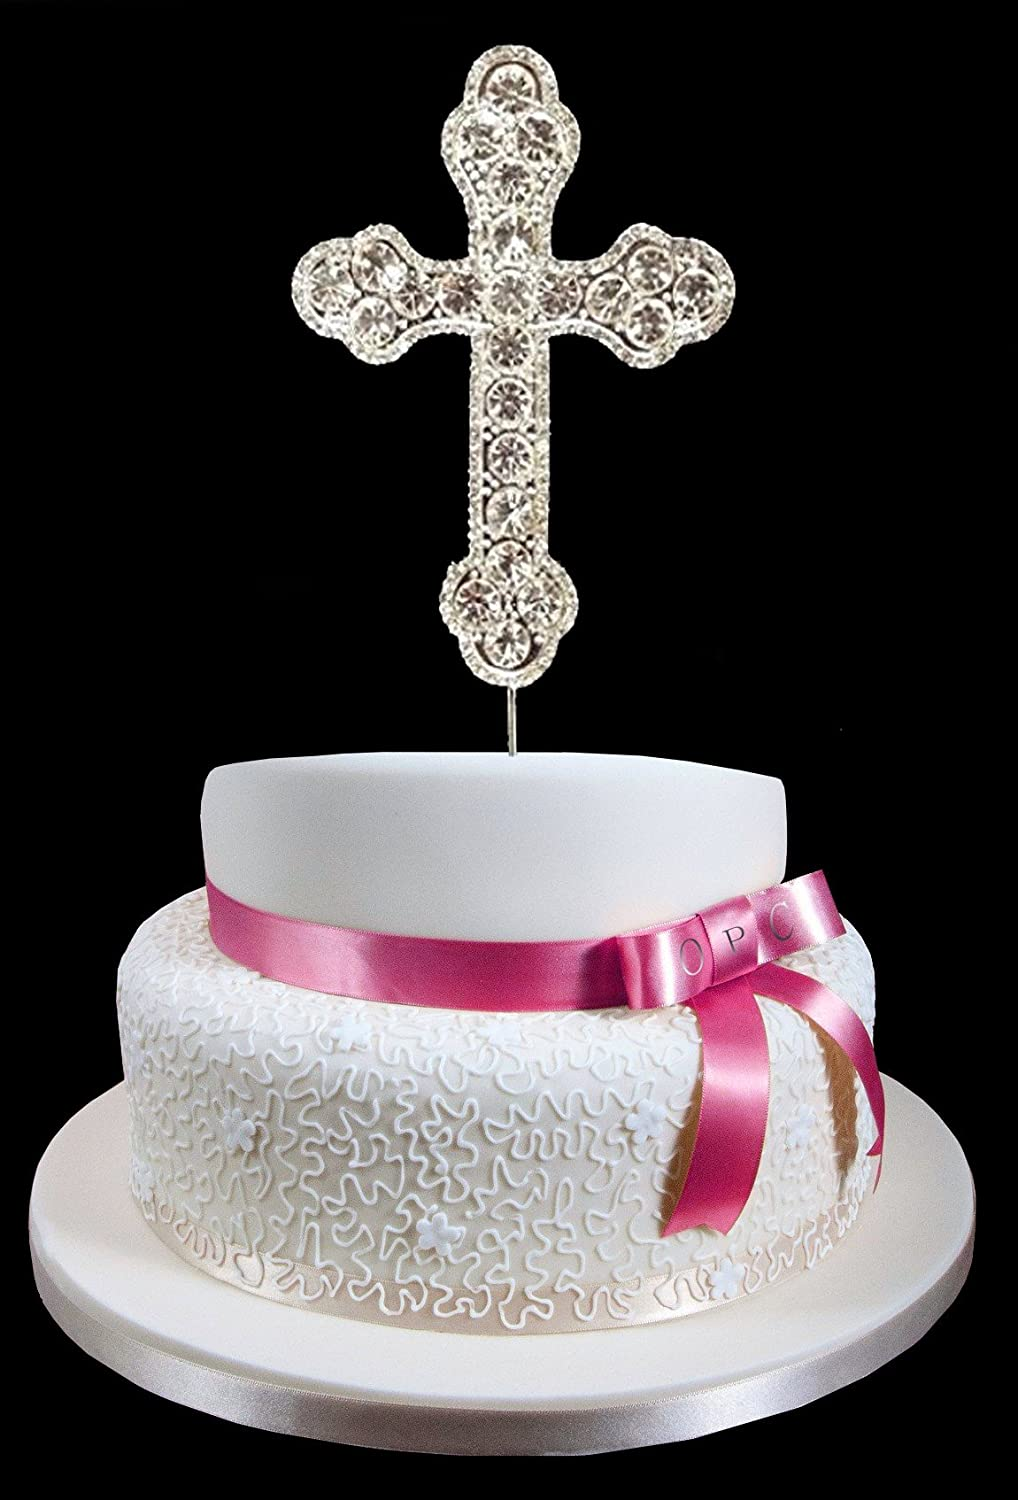 Amazon silver rhinestone cross cake topper communion amazon silver rhinestone cross cake topper communion christening wedding confirmation religious occasion by onlinepartycenter kitchen dining junglespirit Choice Image